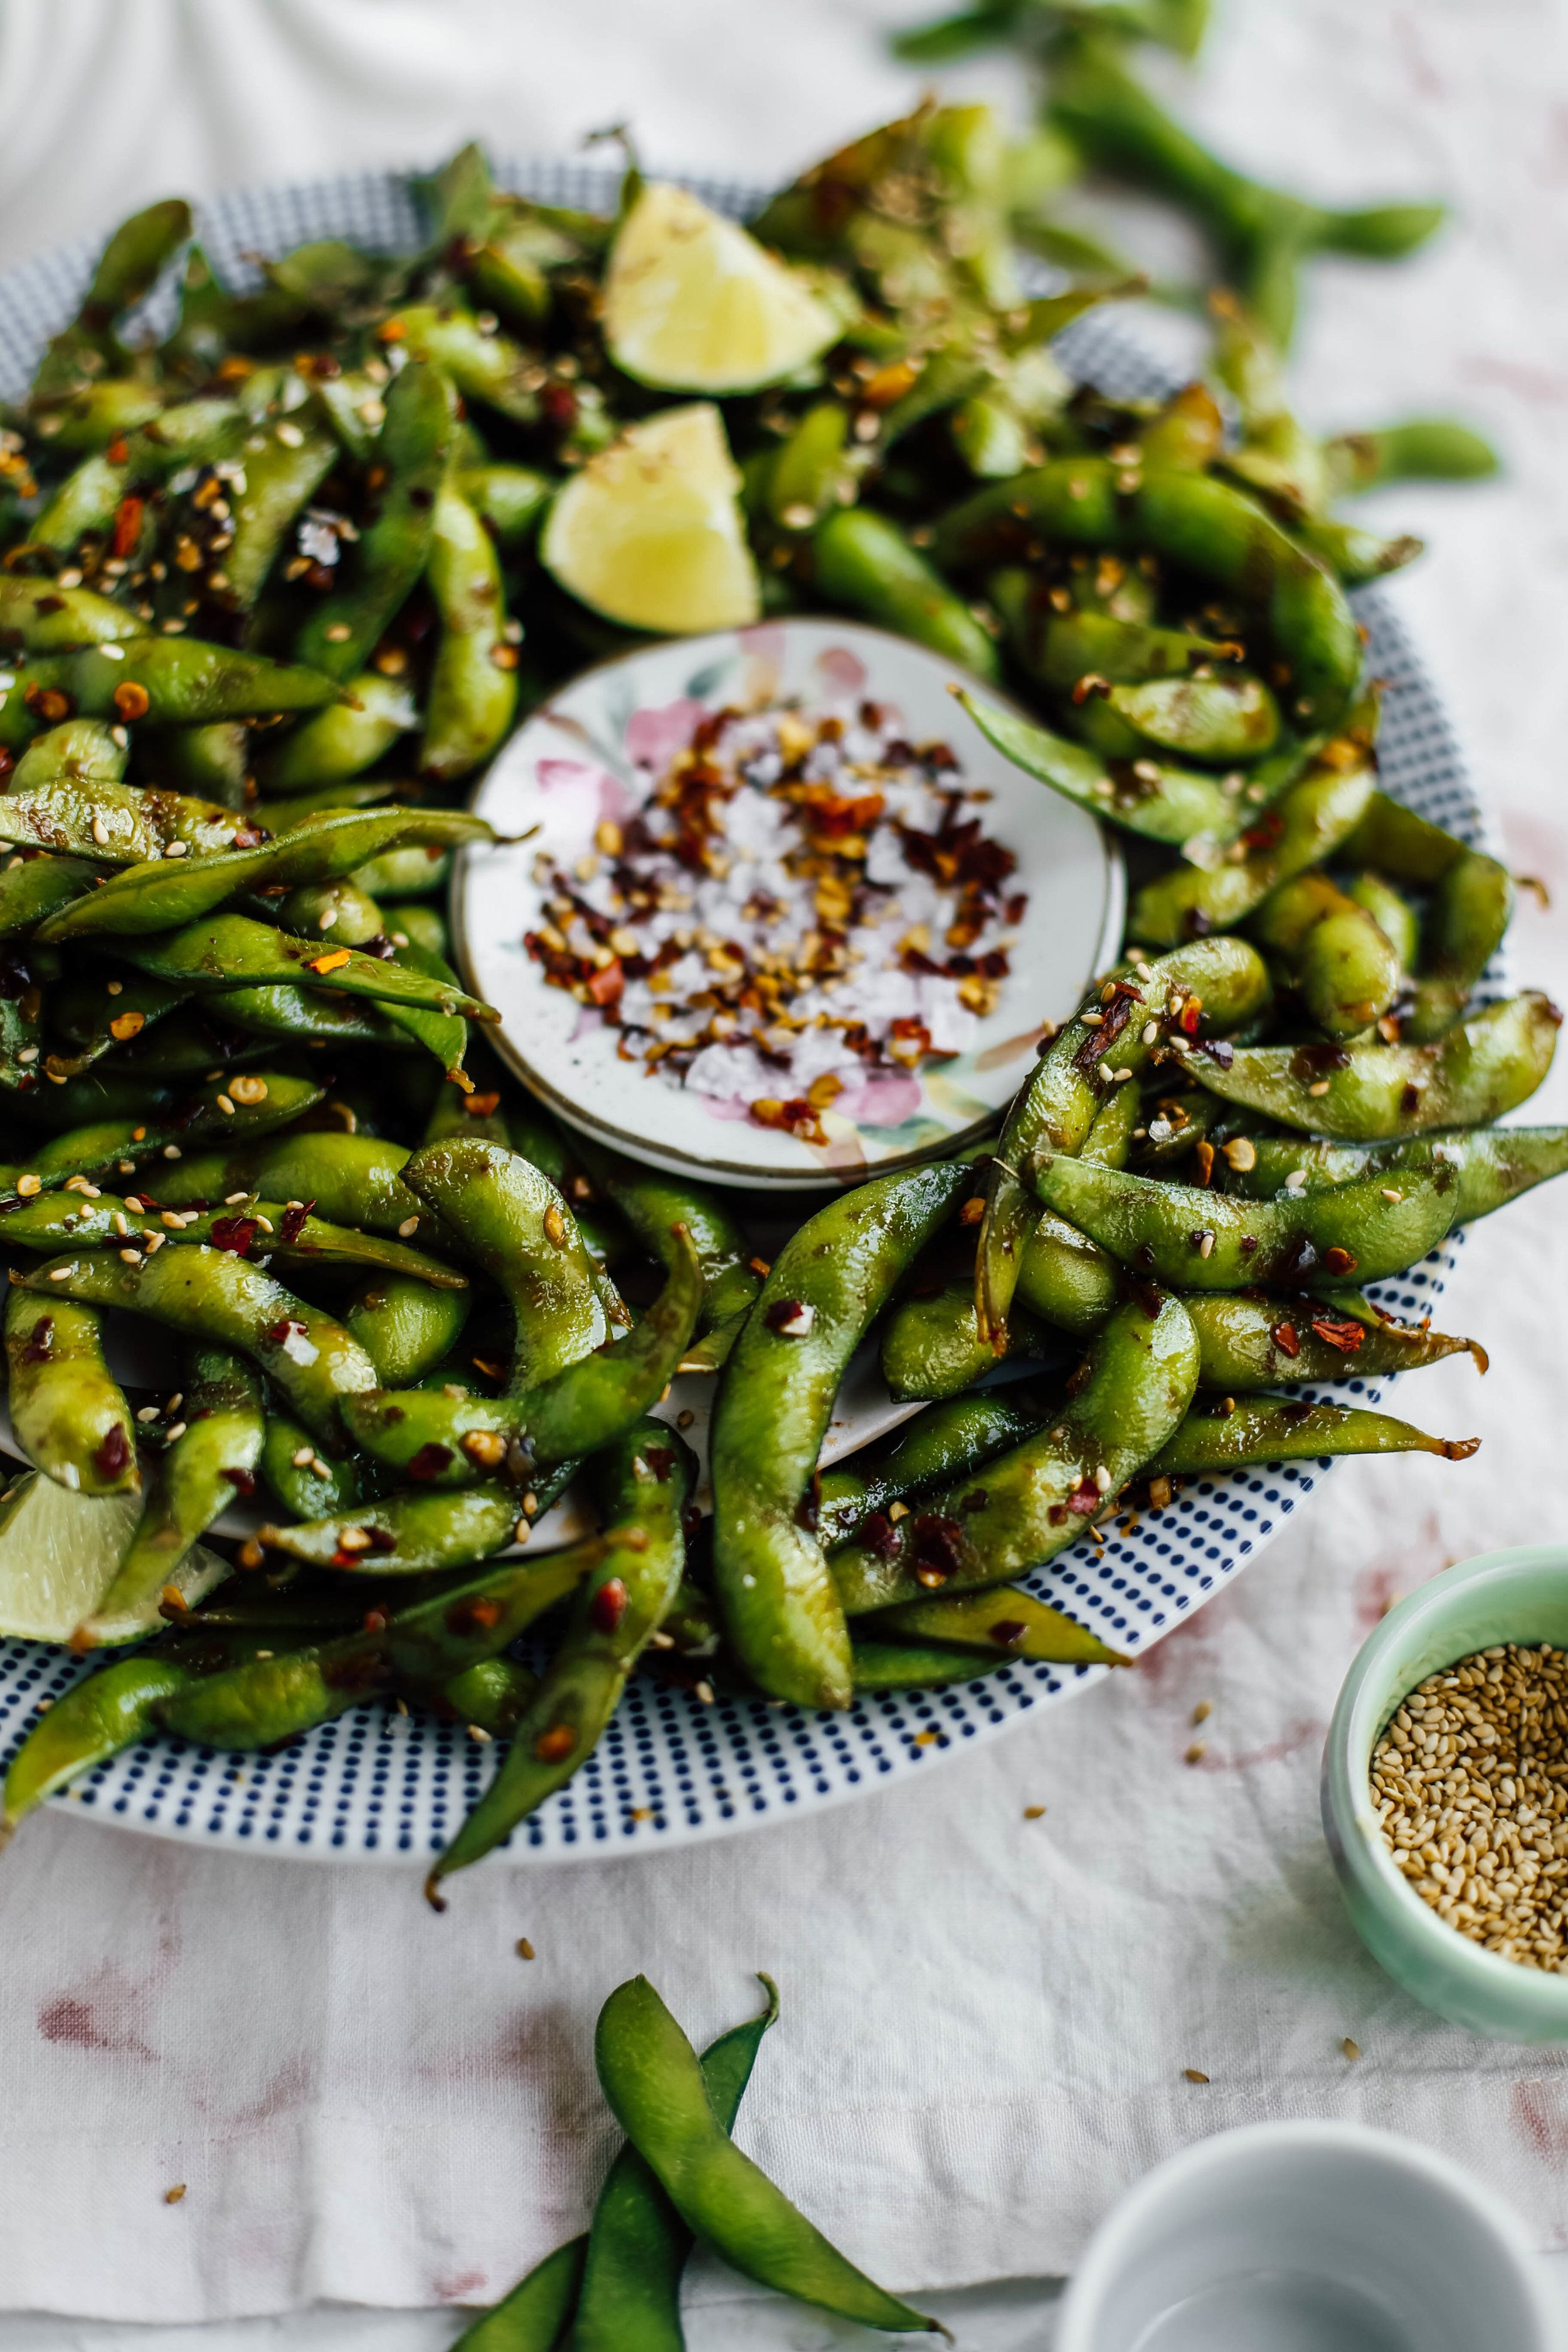 Garlic And Red Chili Pepper Flake Edamame Beans With Images